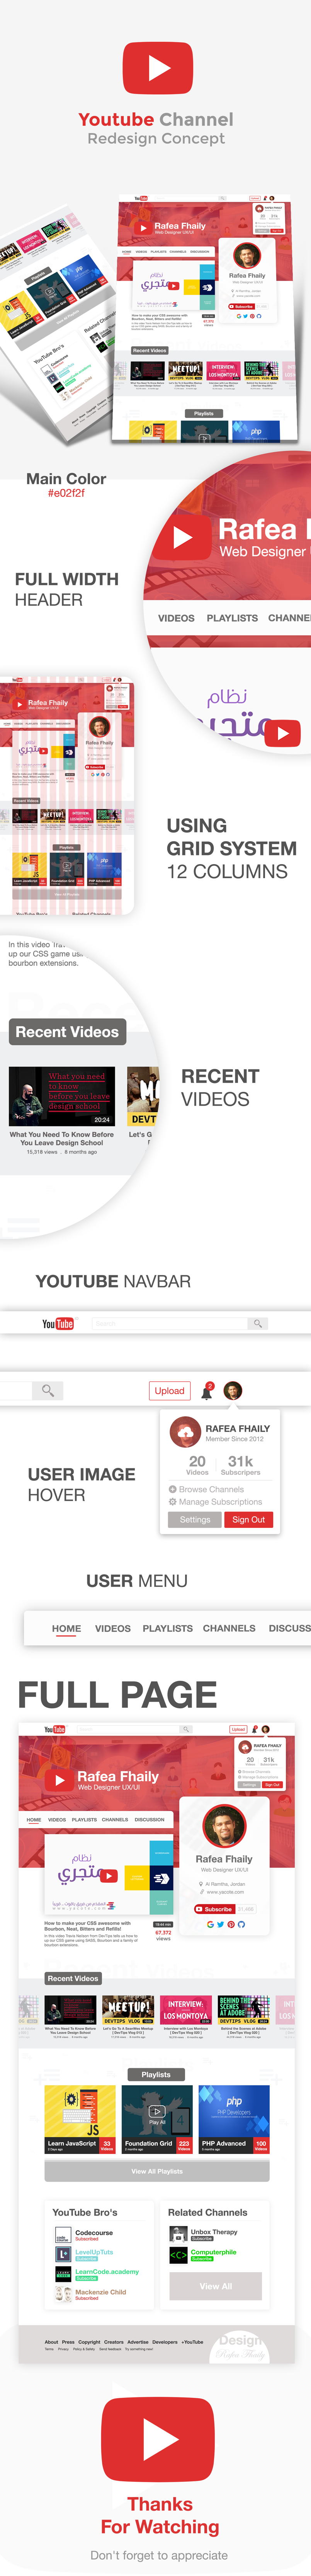 Youtube Channel Redesign Concept